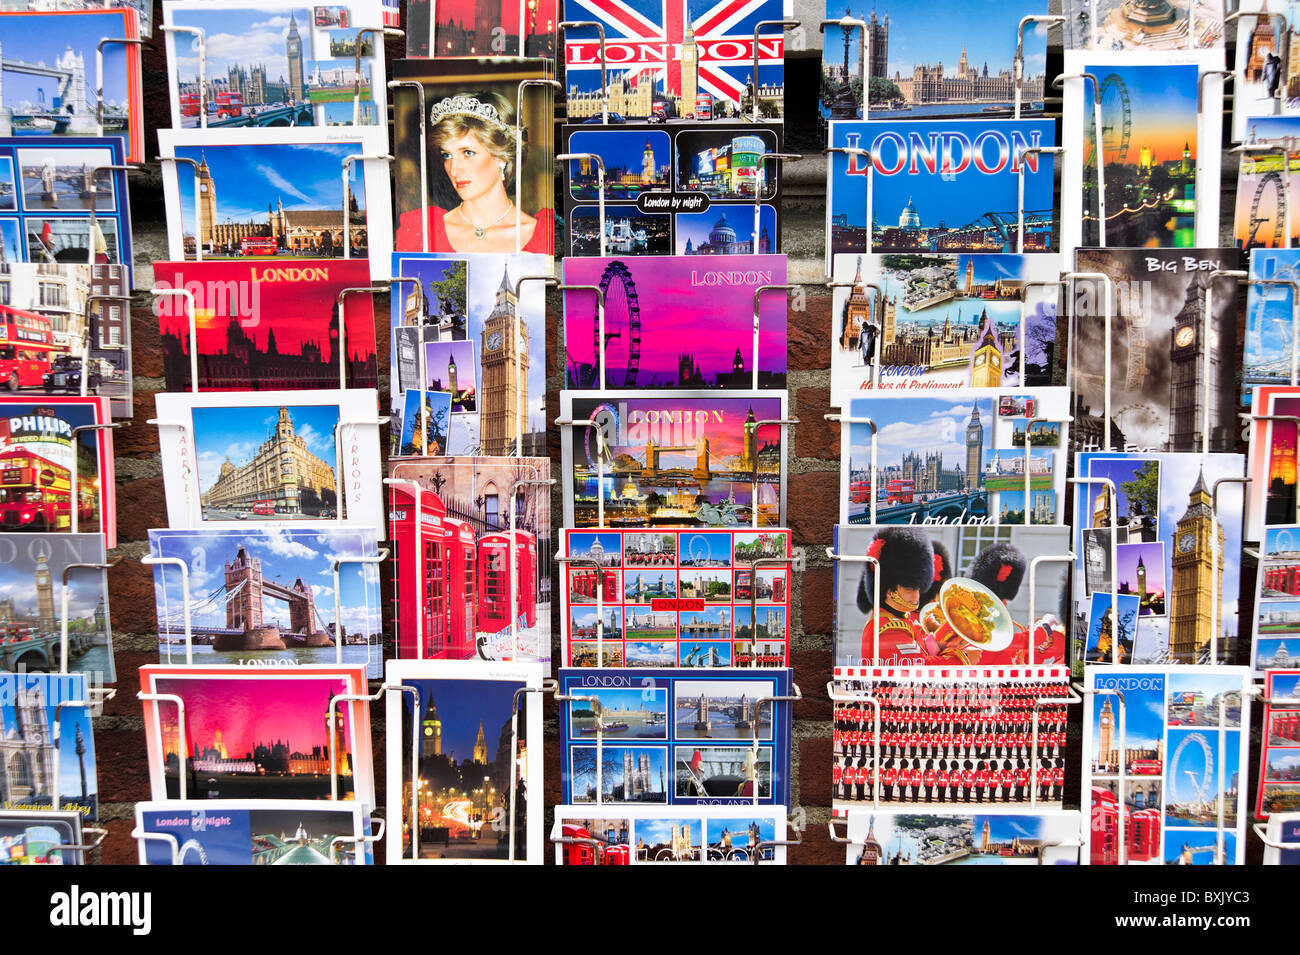 Picture postcards of famous tourist sites in London, England, UK - Stock Image